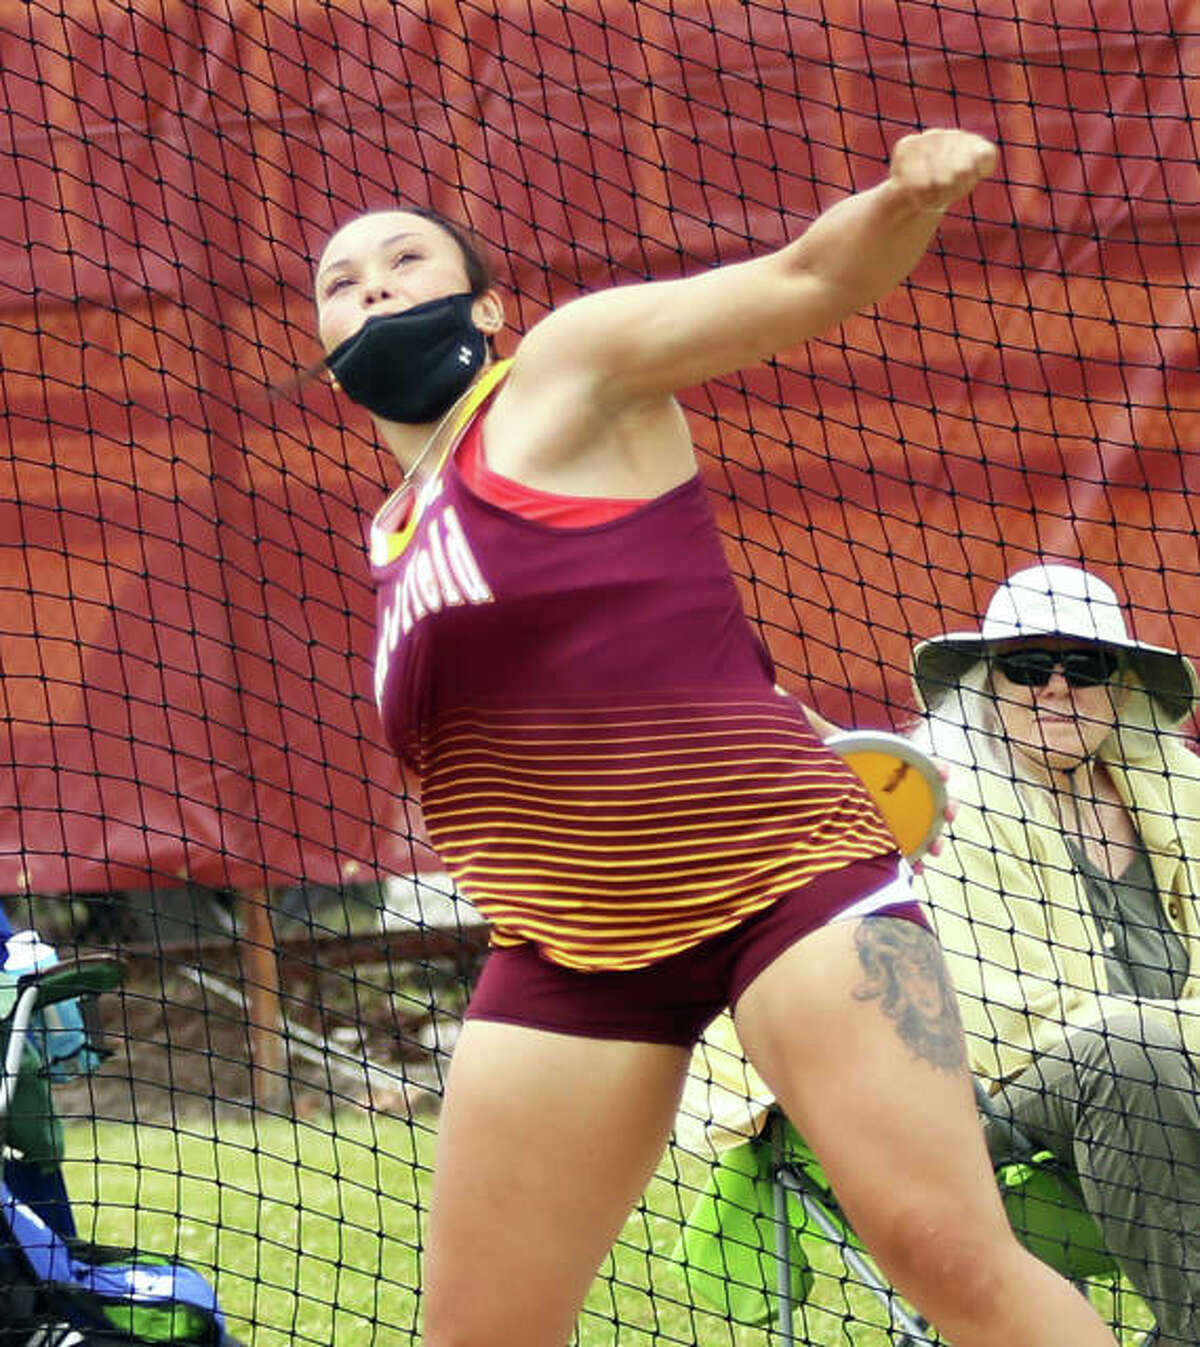 EA-WR senior Jayden Ulrich gets off a throw of 161 feet, 7 inches to set a meet record and win the discus in the Madison County Small-Schools Meet on Monday in Wood River. It is the sixth longest throw in state history.